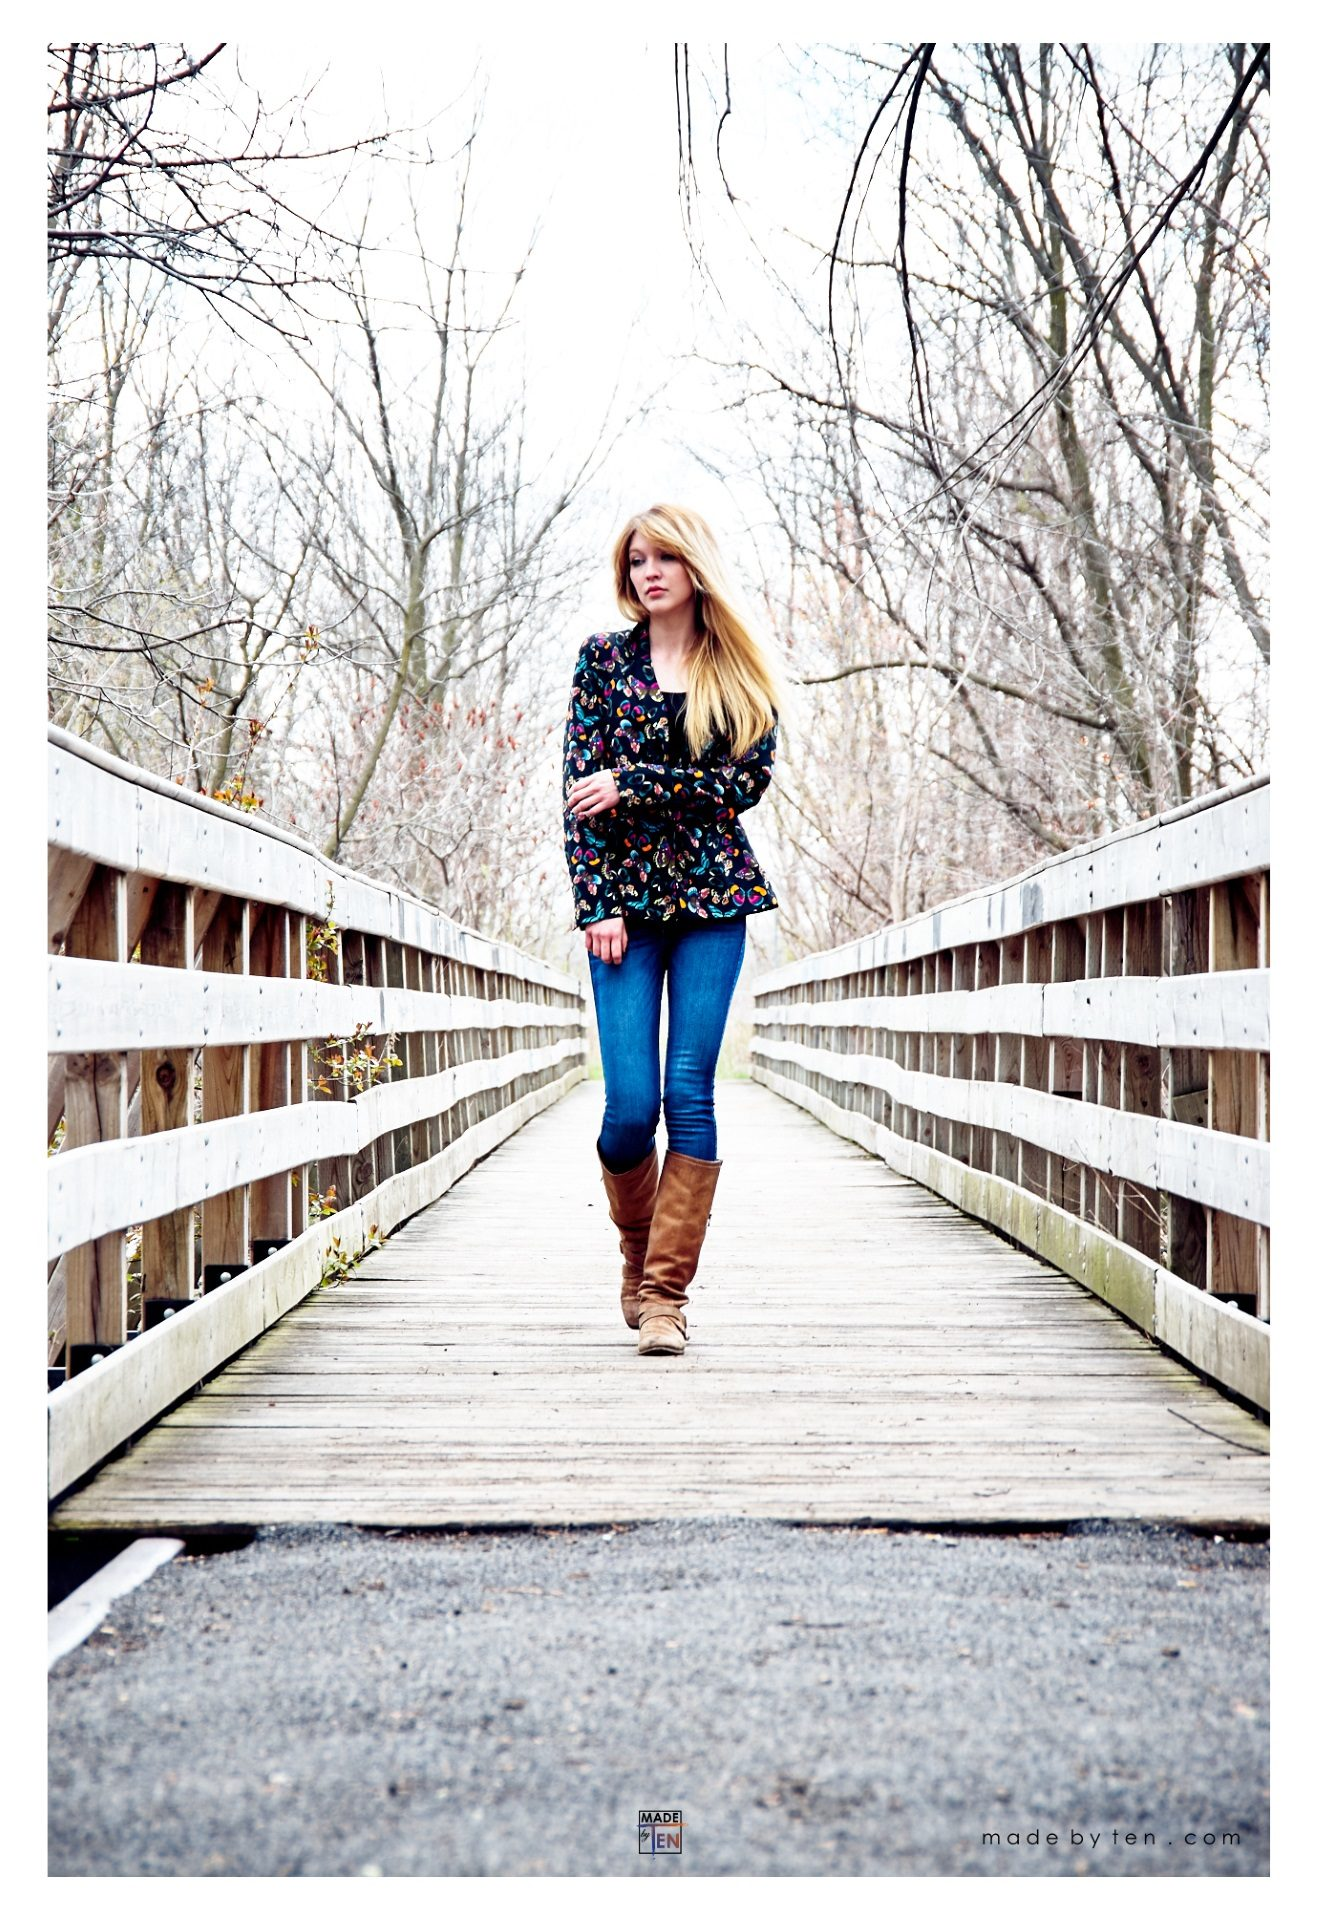 Woman Bridge Walking - GTA Women Lifestyle Photography